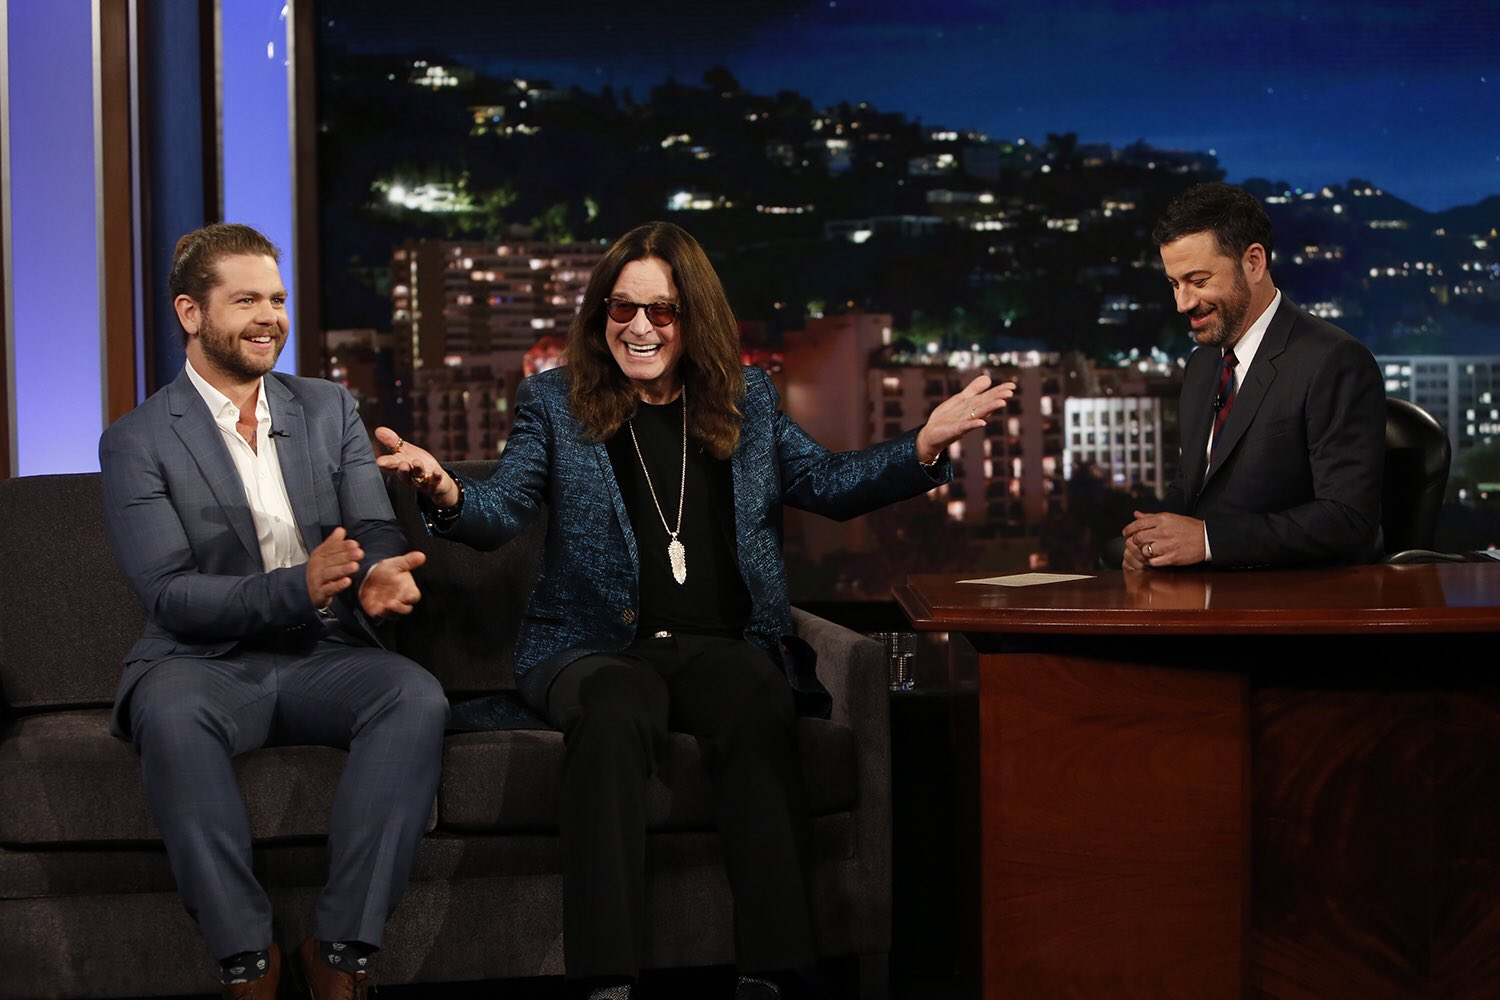 RT @OzWorldDetour: Watch @OzzyOsbourne and @JackOsbourne on @JimmyKimmelLive tonight talking about Ozzy & Jack's World Detour https://t.co/…